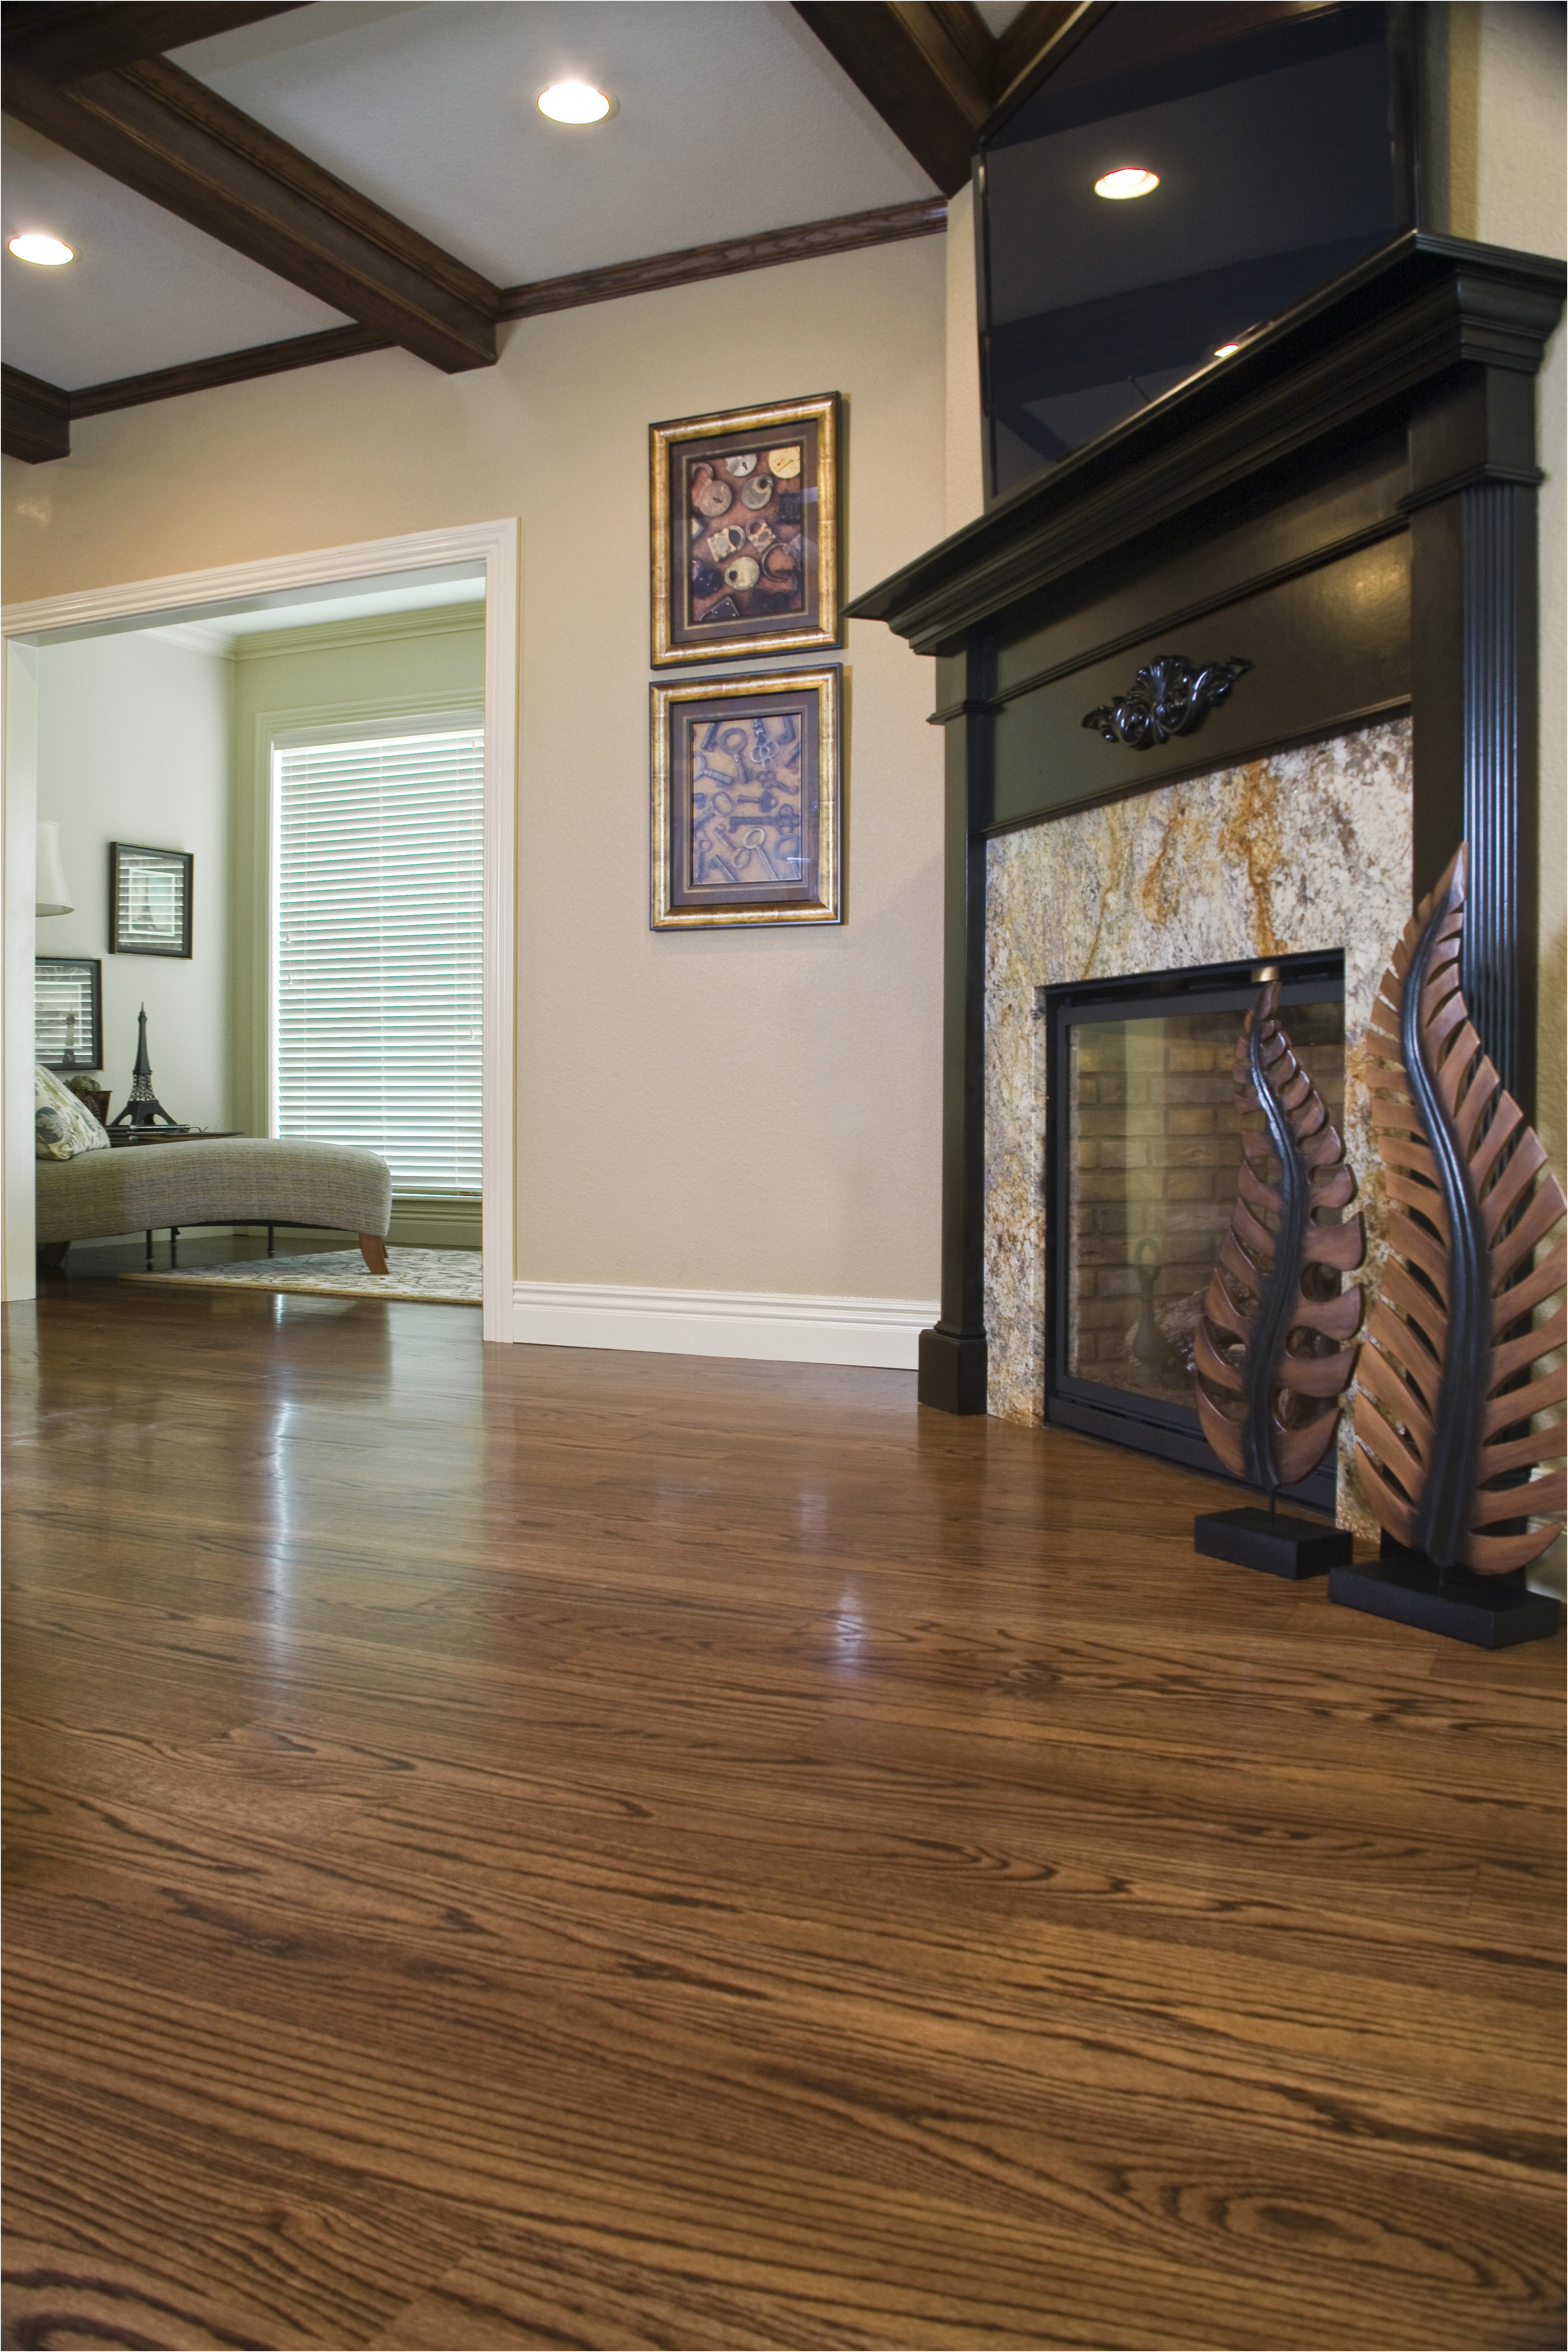 bruce hardwood flooring denver of unfinished red oak flooring lowes fresh floor hardwood flooring cost with regard to related post